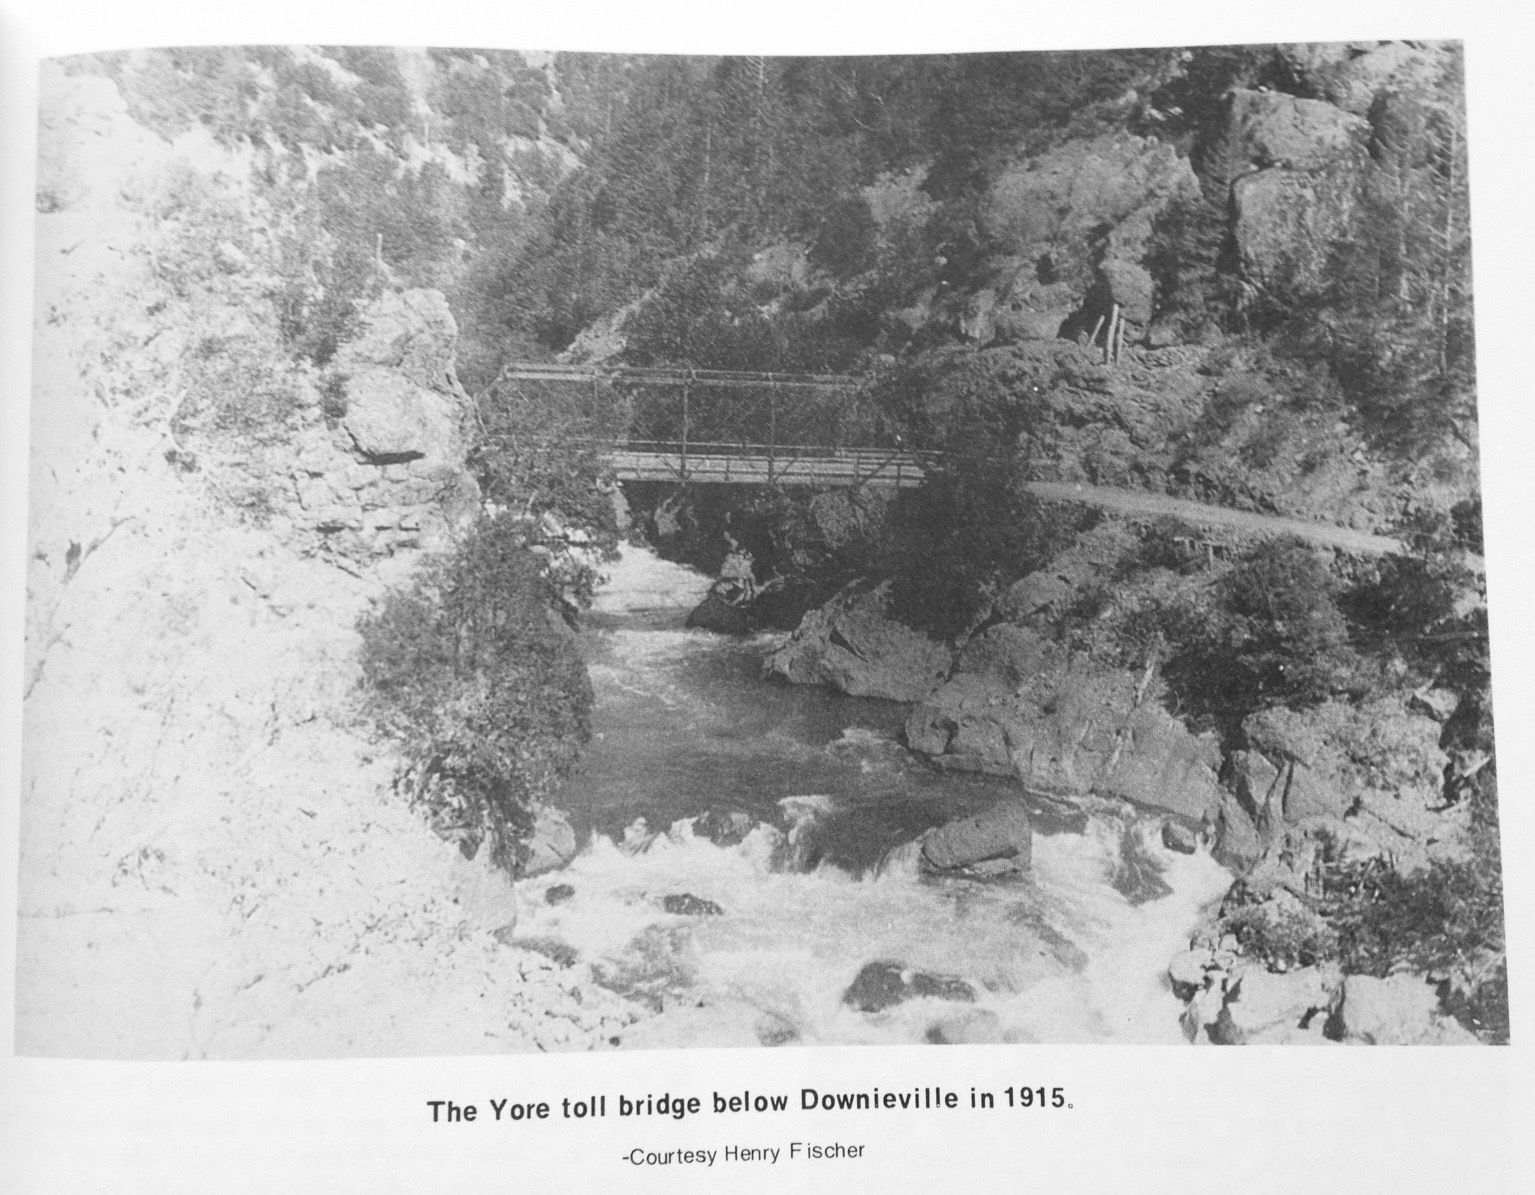 While the bridge is now gone, this historic photo shows the relative danger of North Yuba River. The dry bag was almost directly under where the bridge used to be.